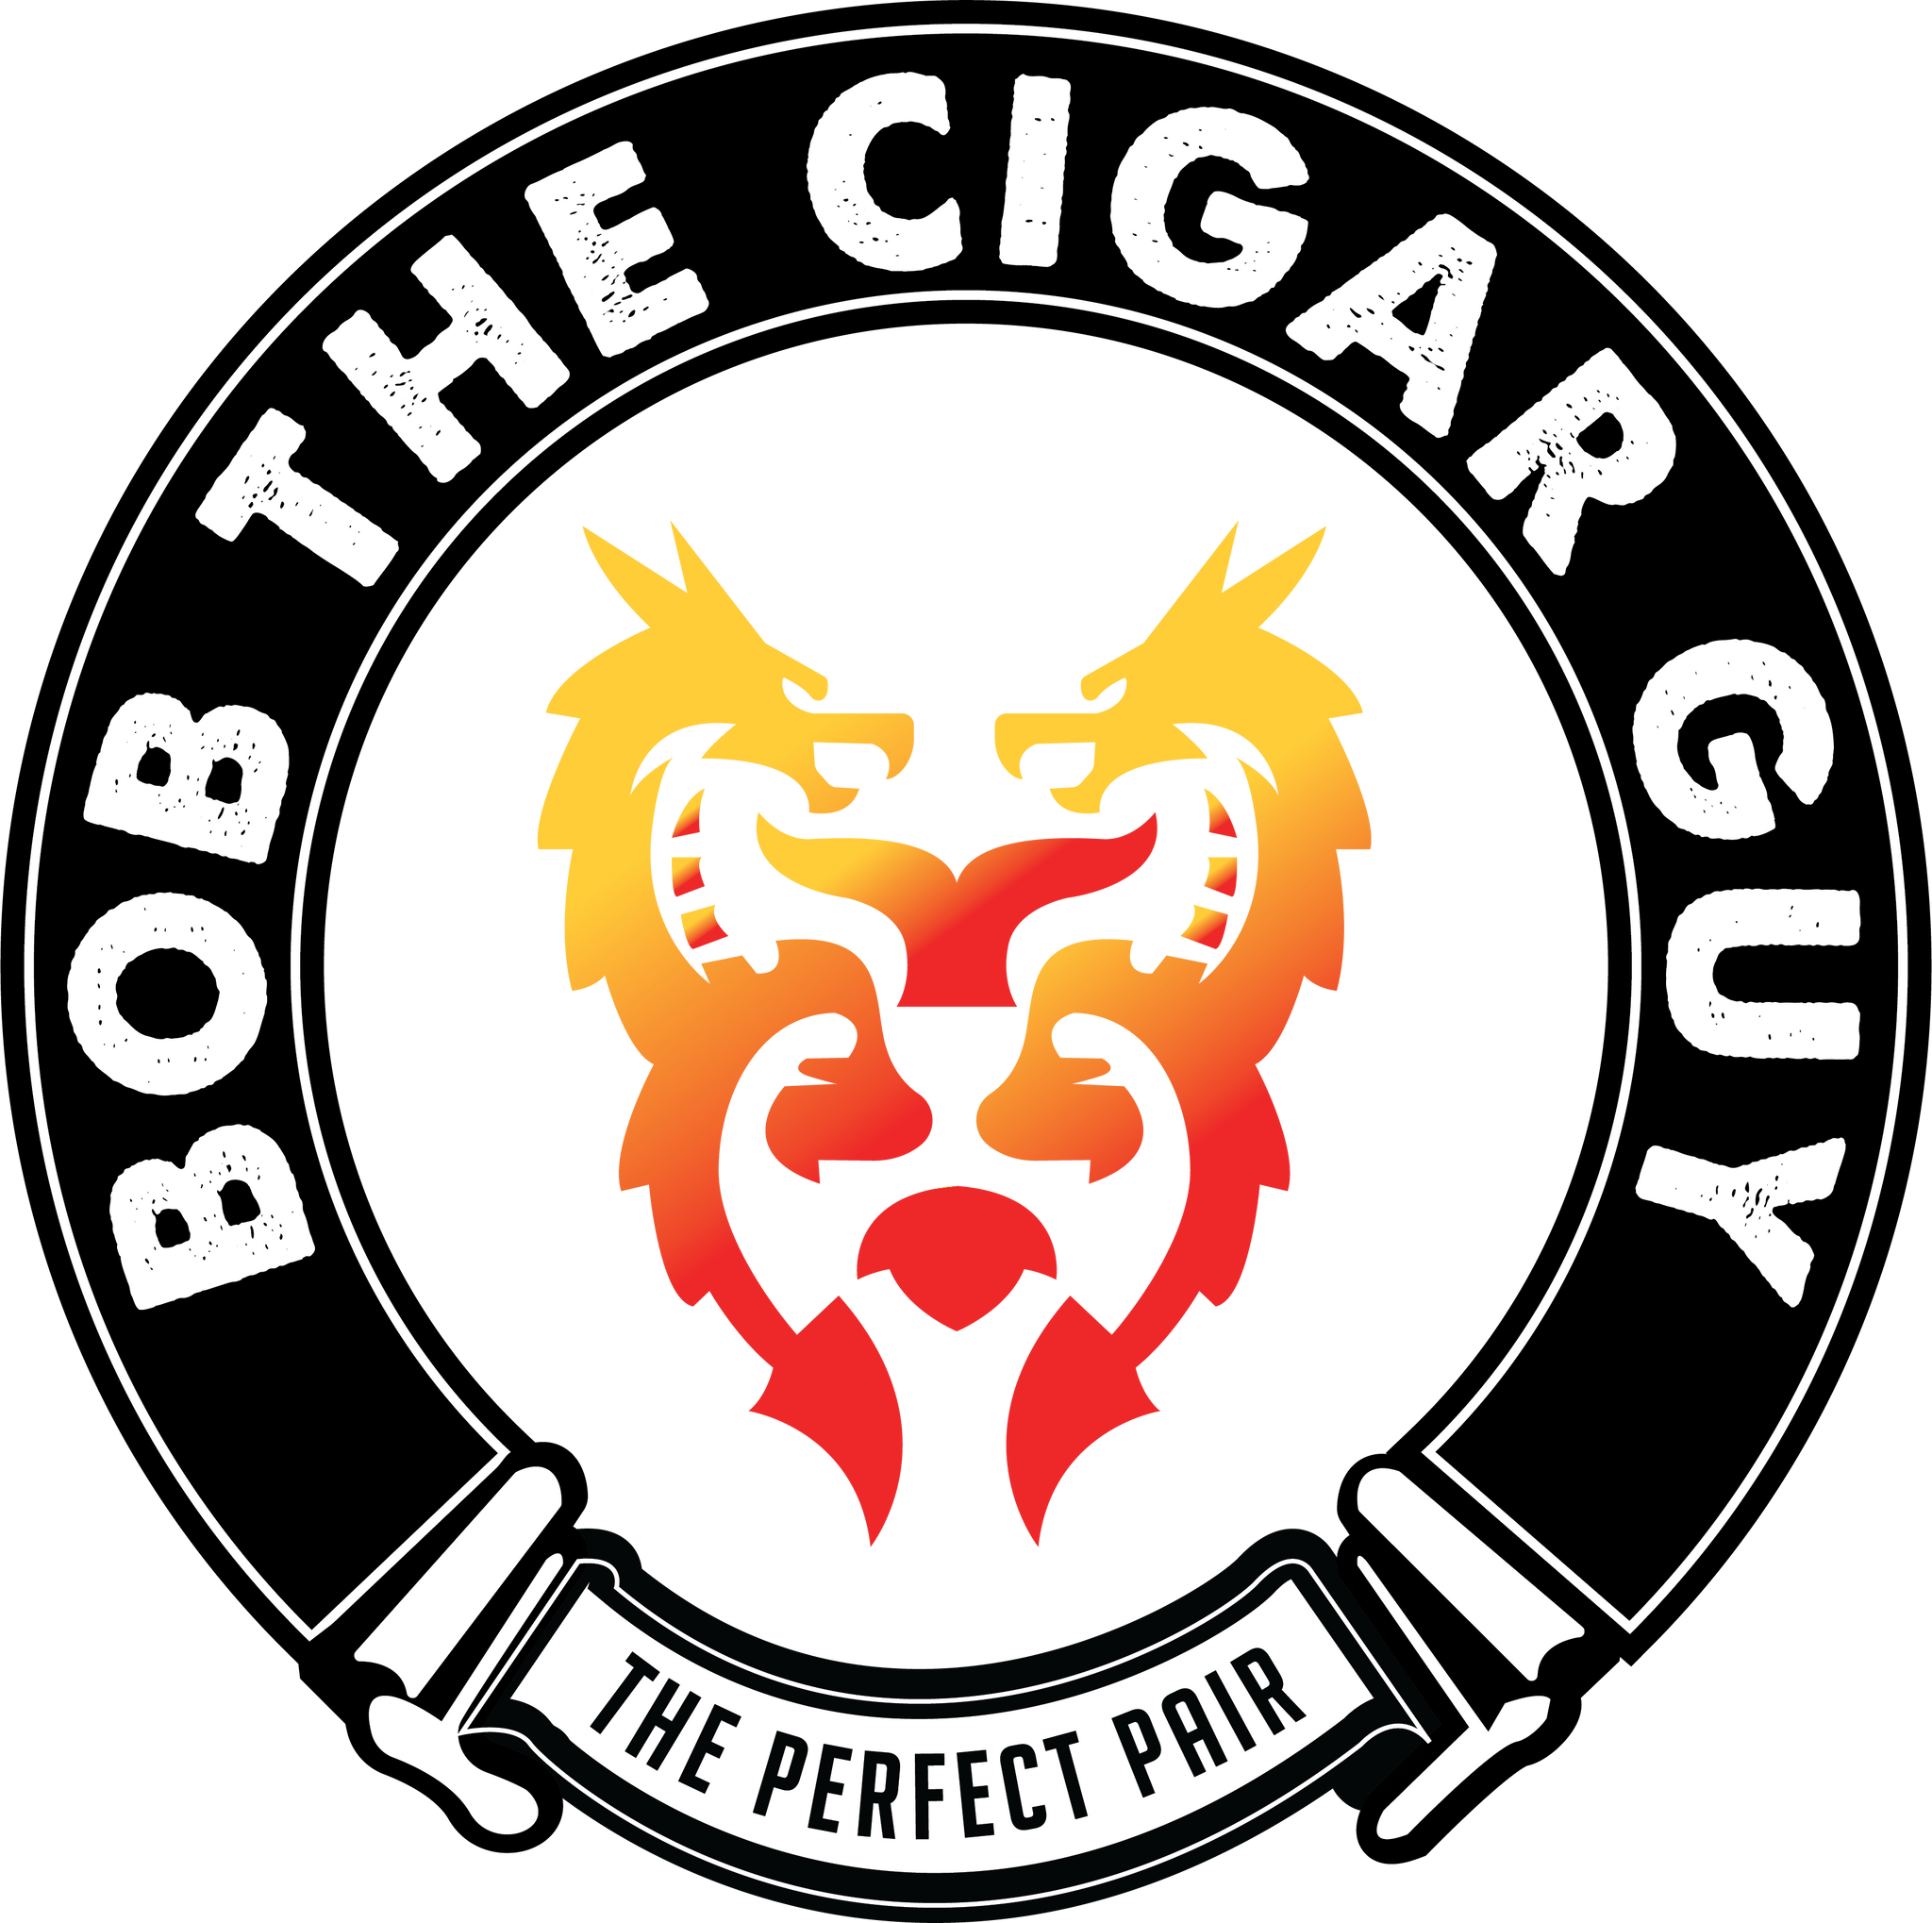 Bob the Cigar Guy - The Perfect Pair